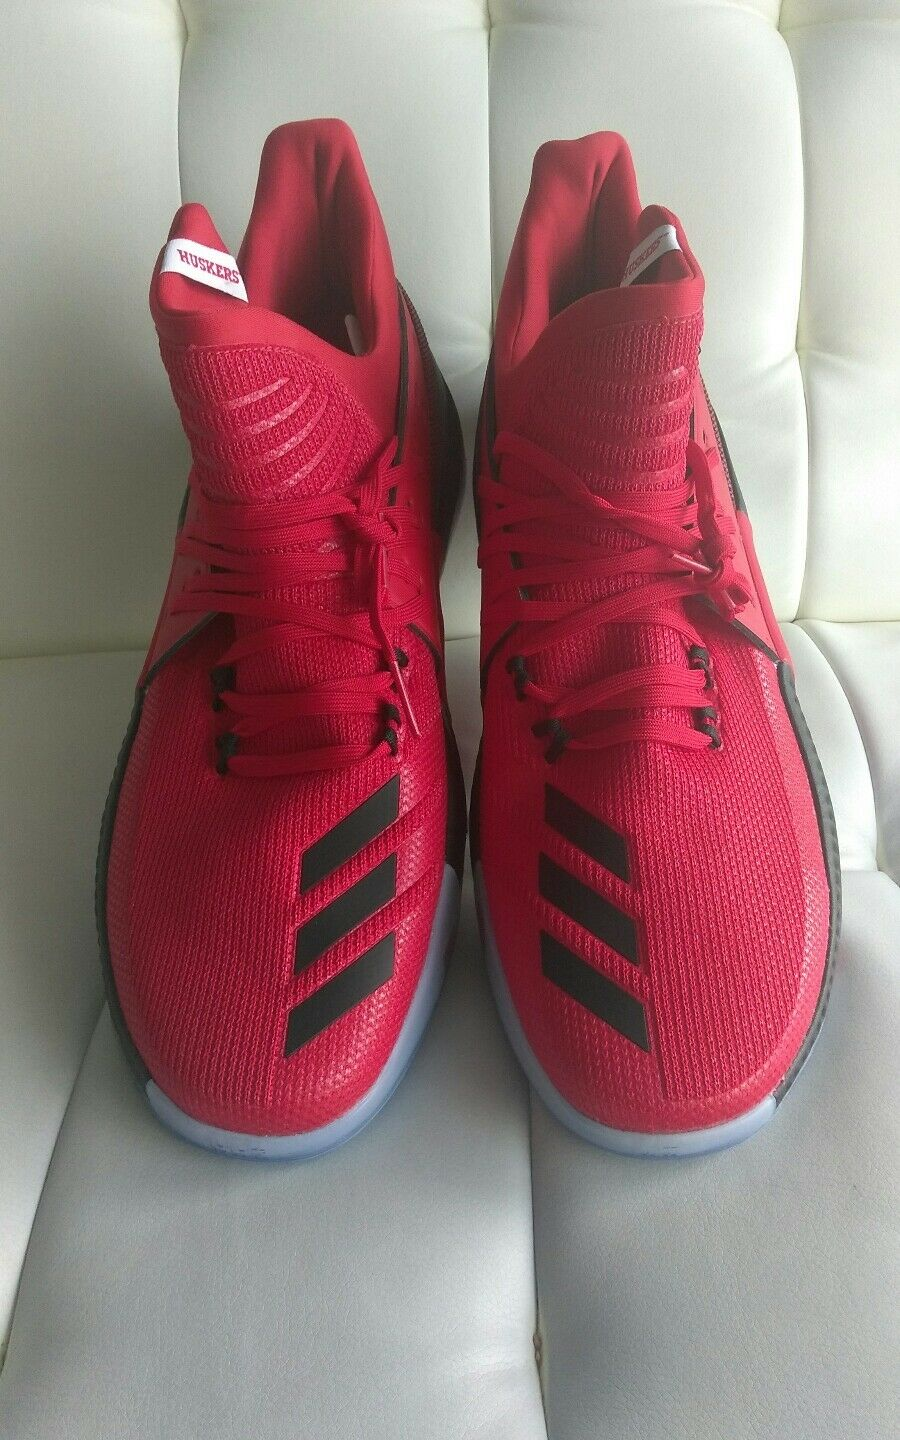 New Men's ADIDAS D LILLARD 3 Huskers - BY3328 - Nebraska Huskers 3 NCAA Sz 18 Free Ship 4209c8